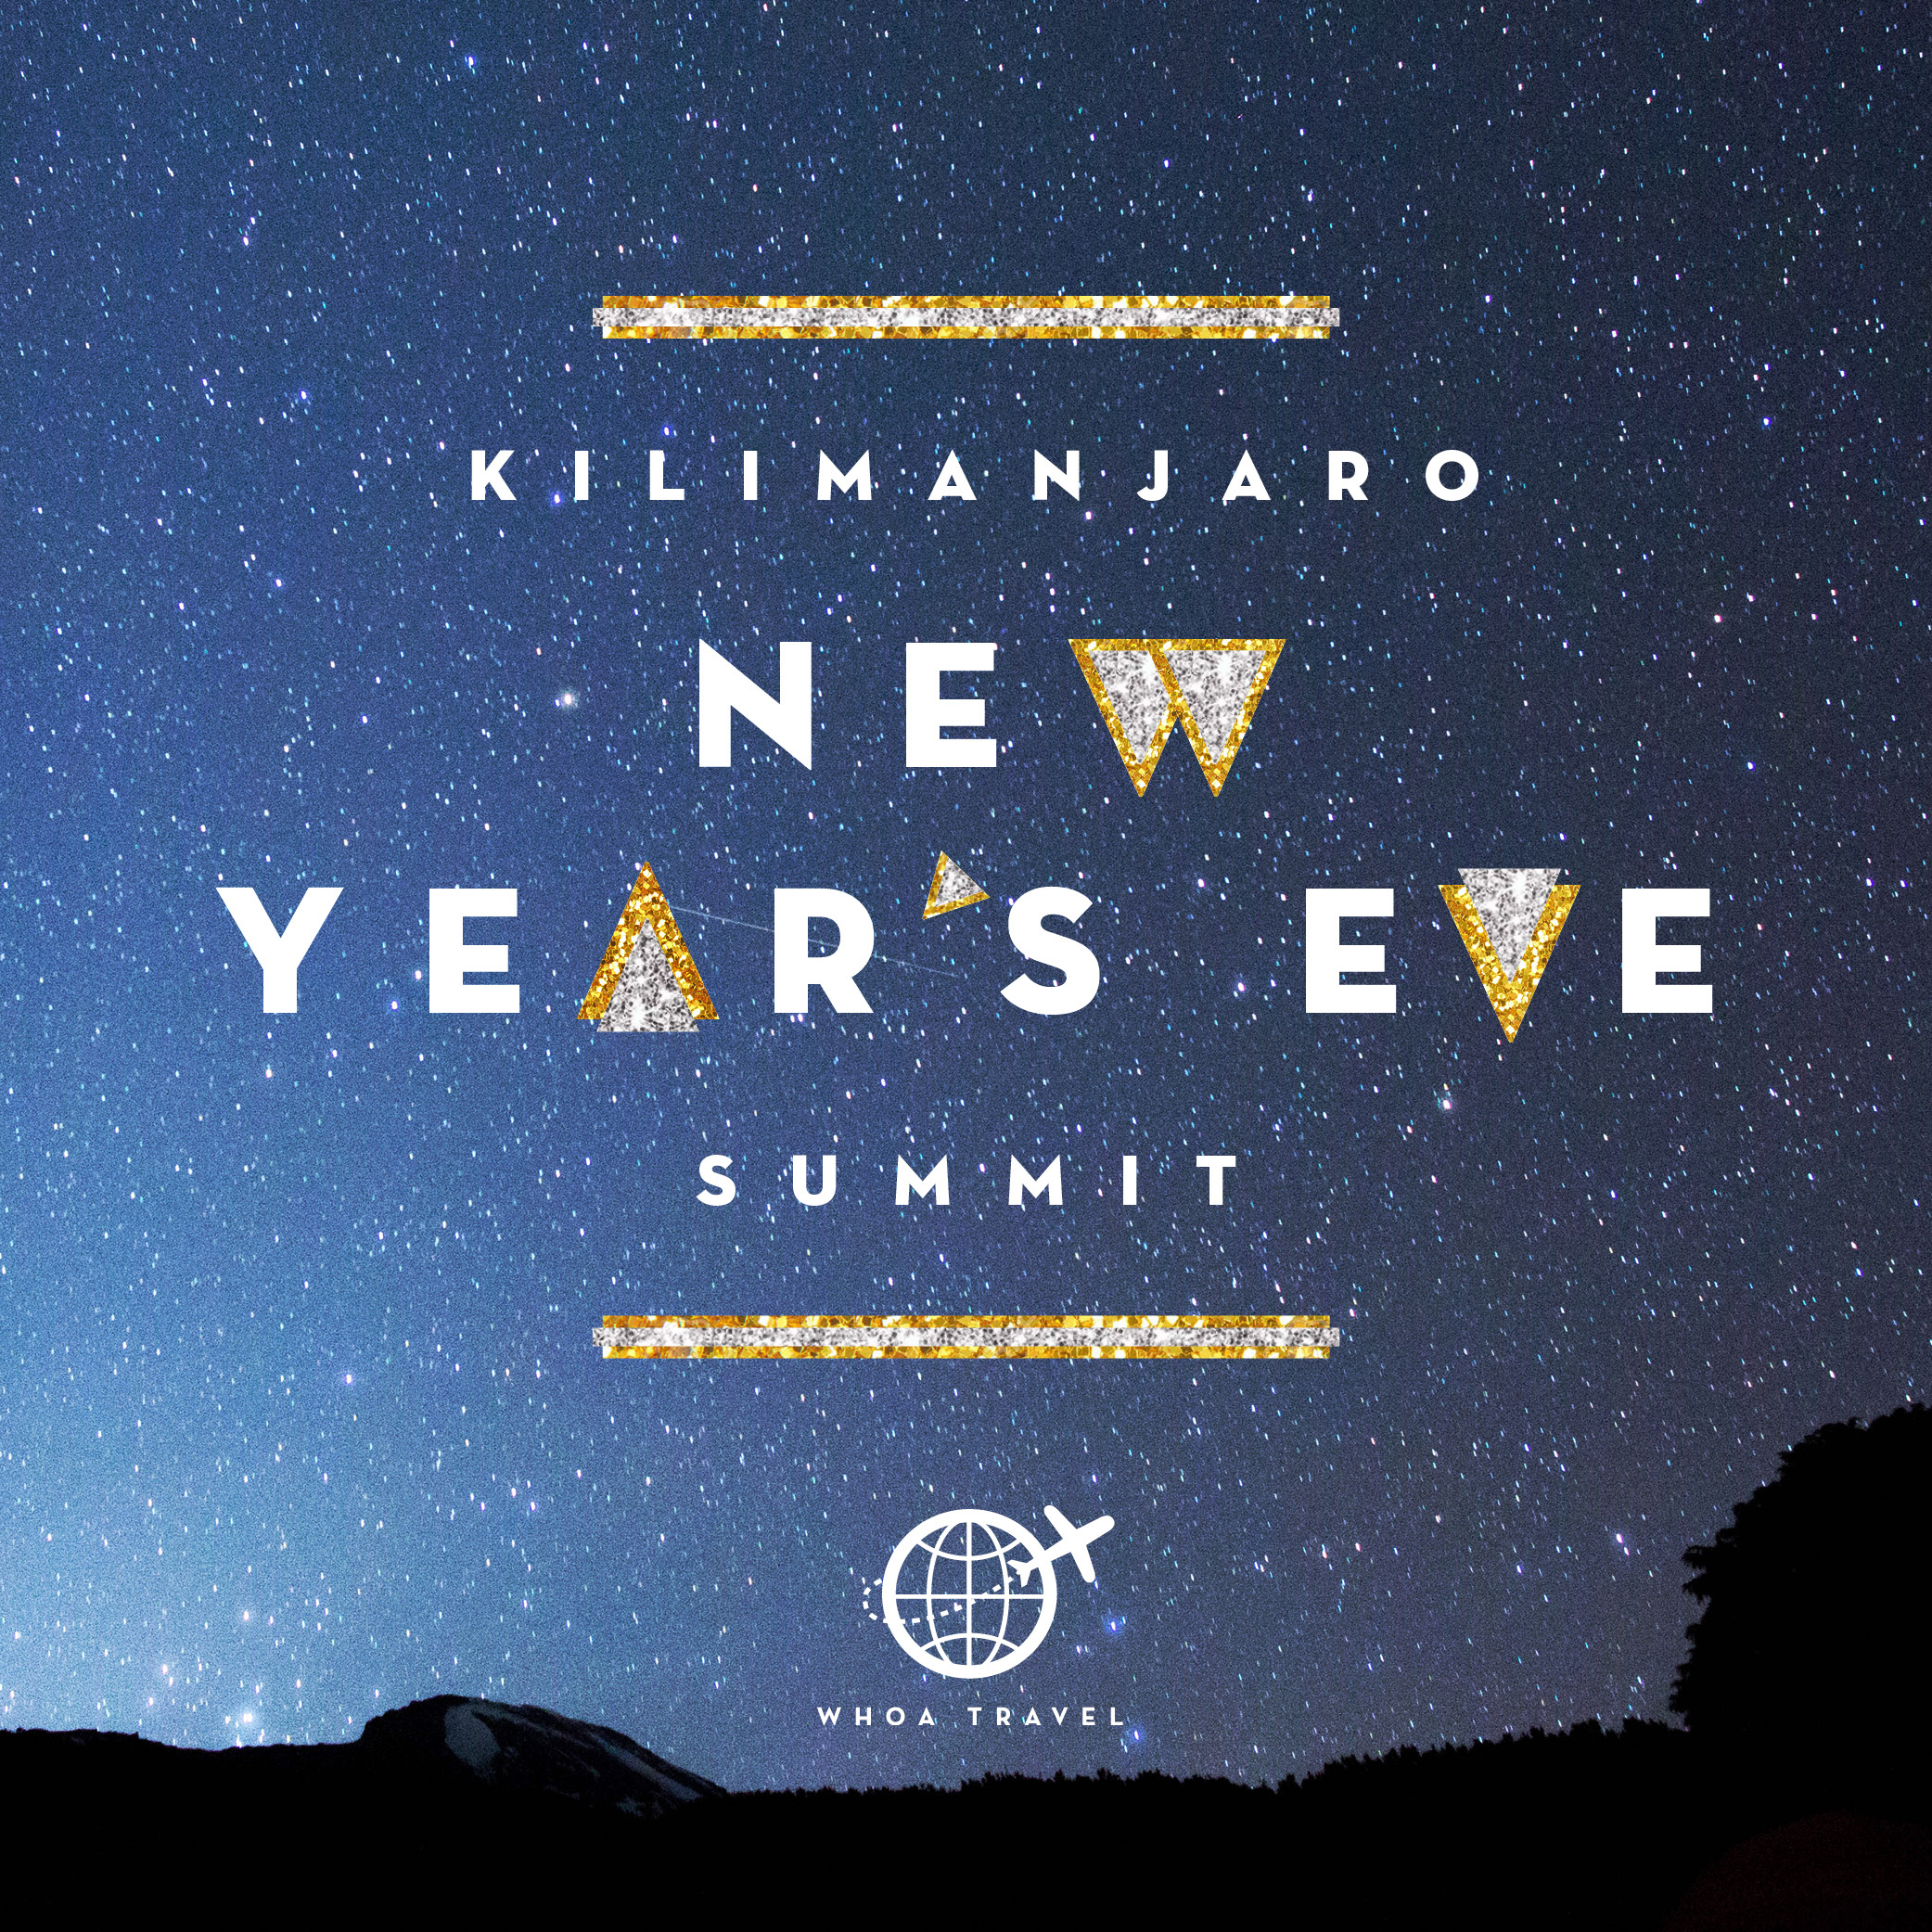 DEC 26 - JAN 3 - 2020 - 2021NEW YEAR'S EVE SUMMIT Ring in 2021on the Roof of Africa